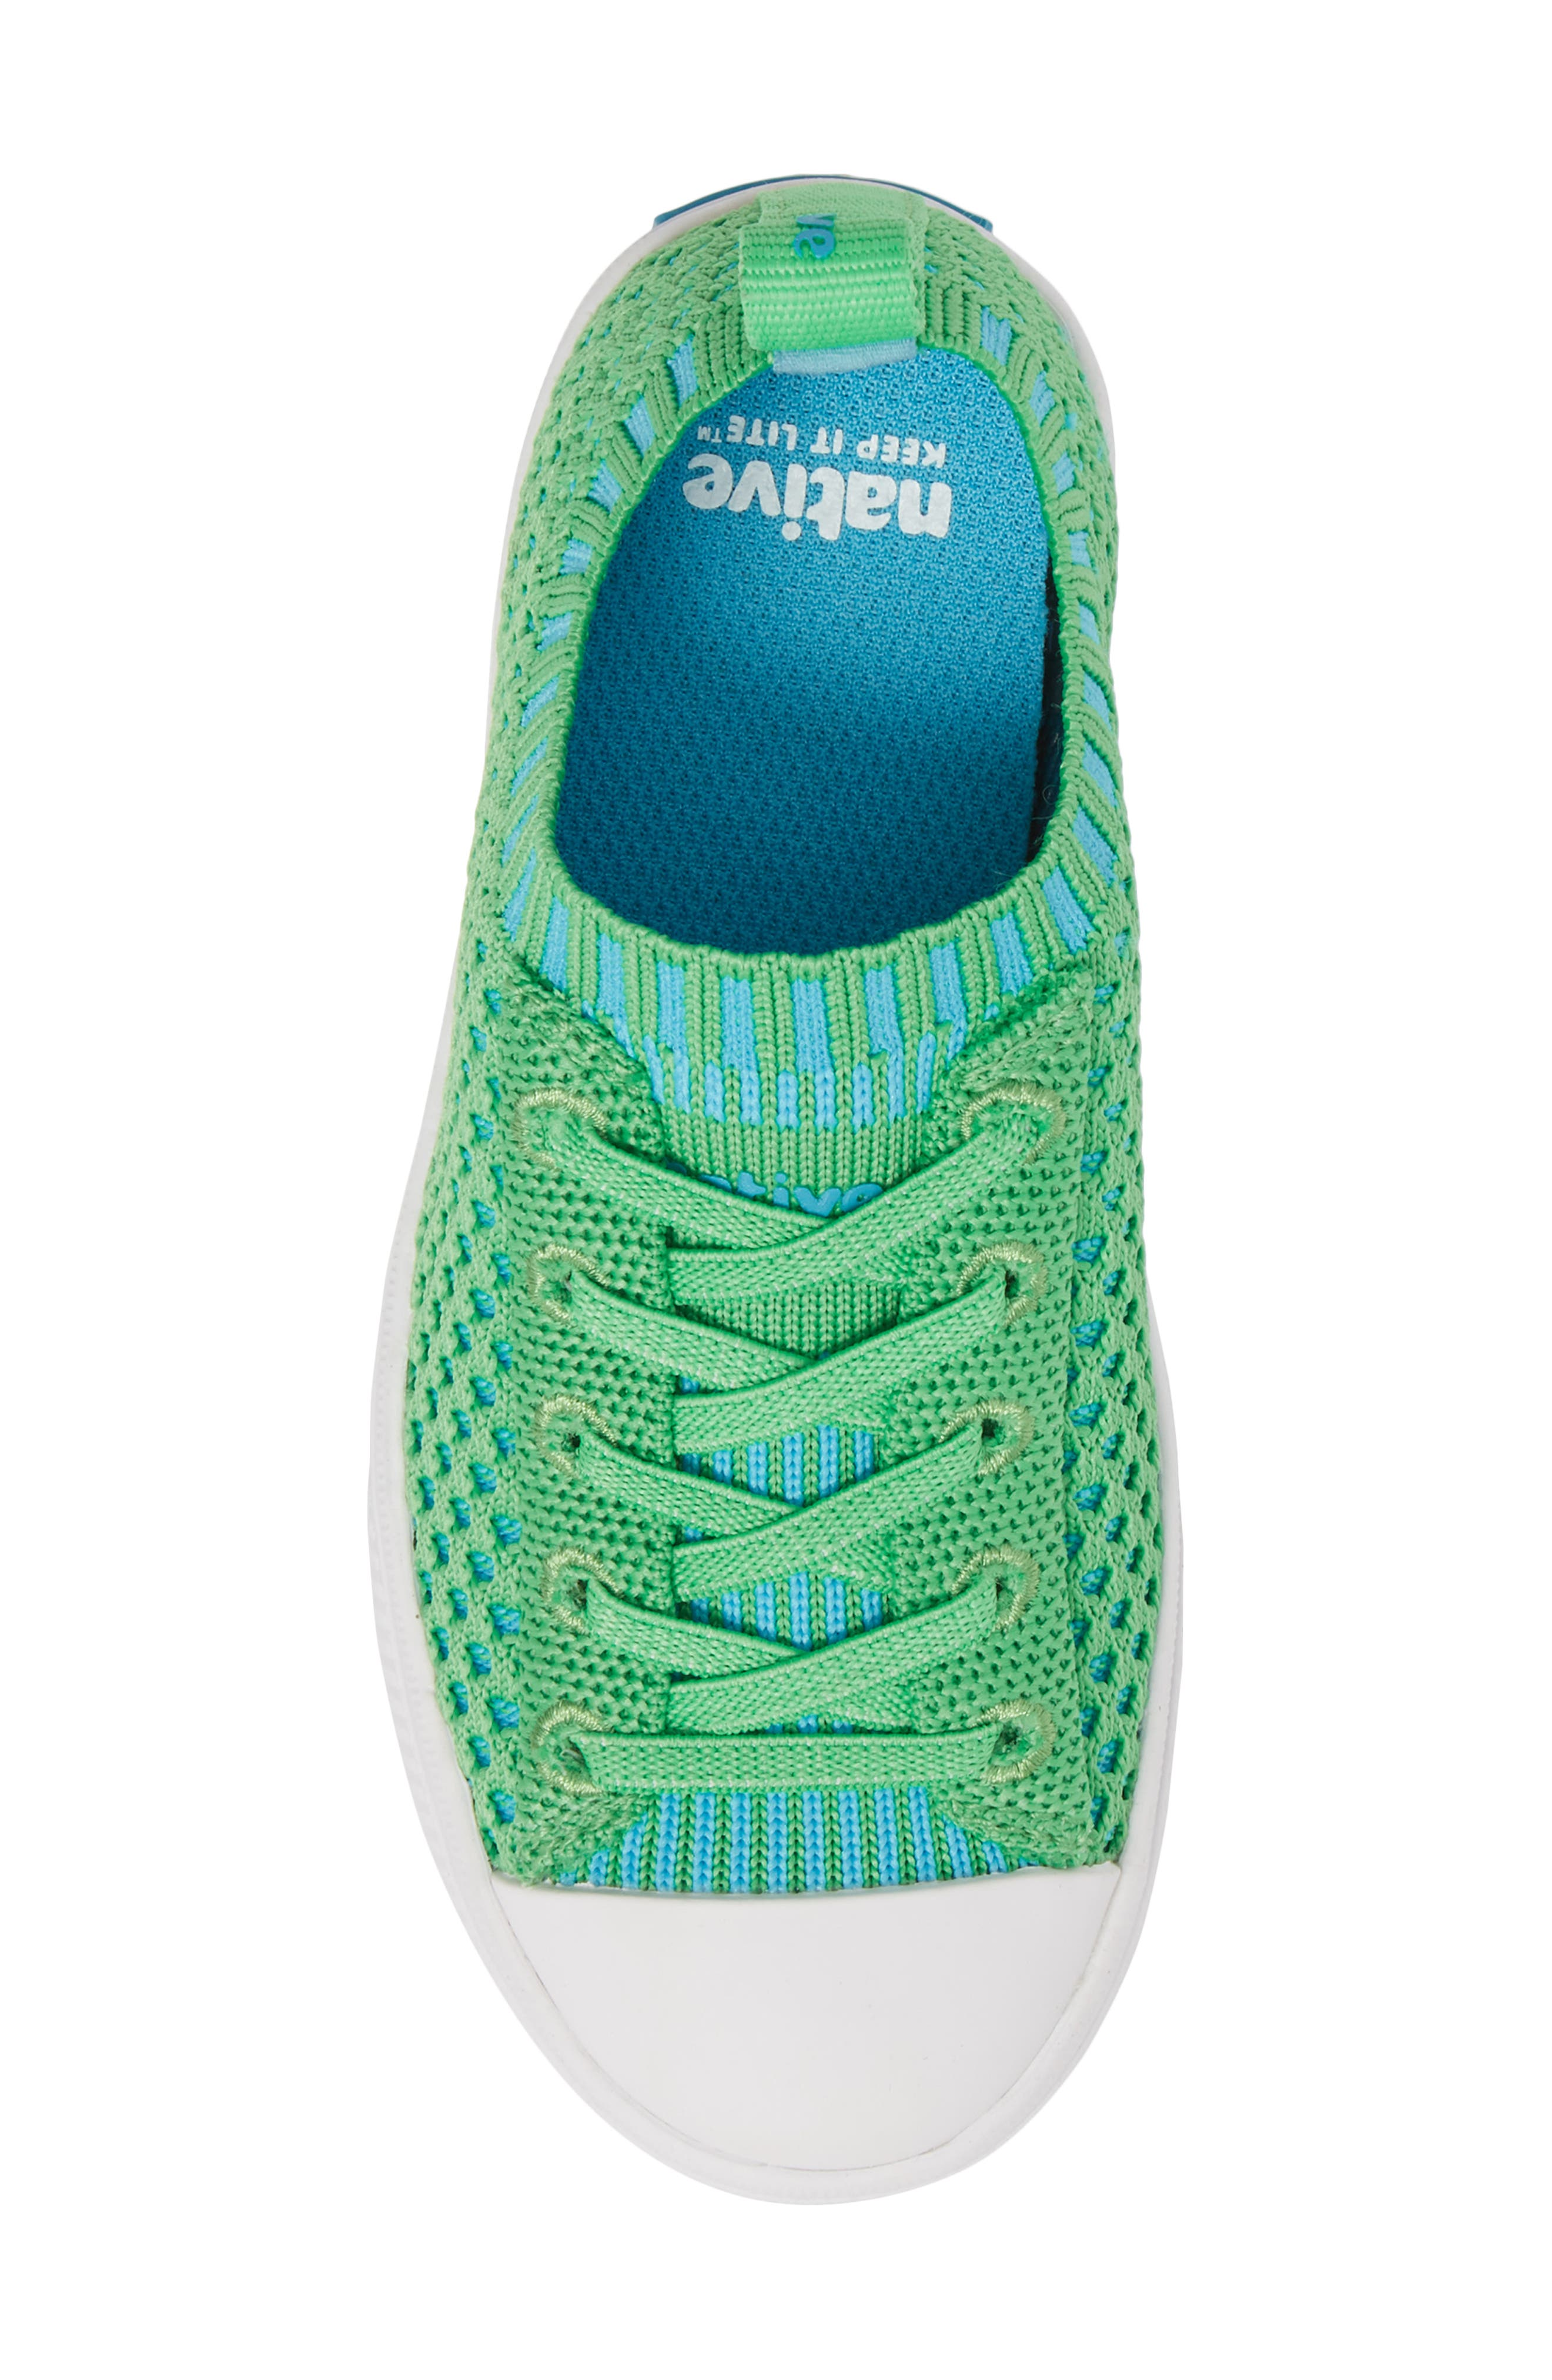 Native Jefferson 2.0 LiteKnit Sneaker,                             Alternate thumbnail 5, color,                             GRASS GREEN/ SHELL WHITE